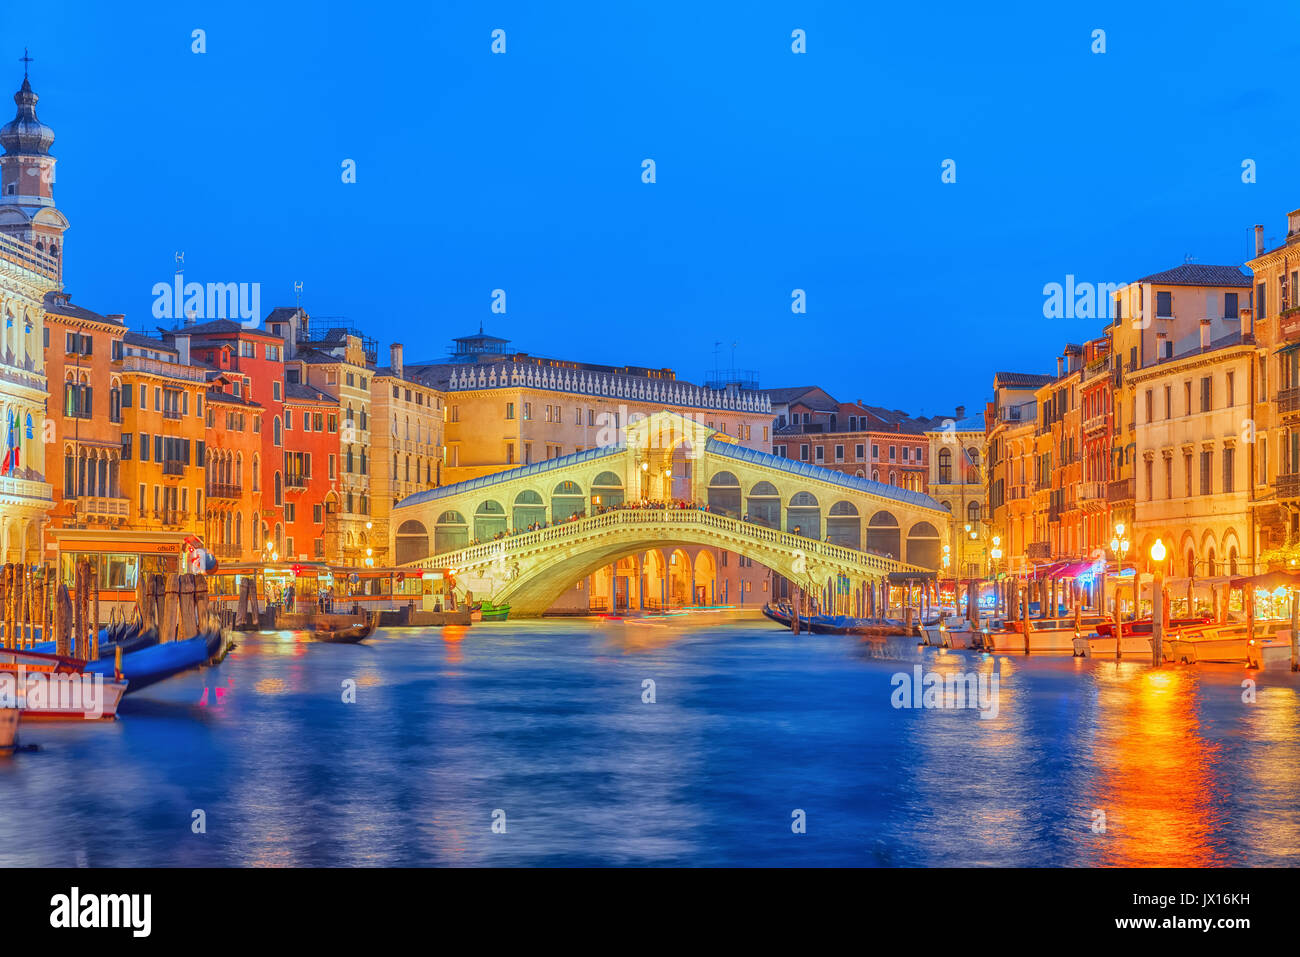 Rialto Bridge (Ponte di Rialto) or Bridge of Sighs and view of the most beautiful canal of Venice - Grand Canal and boats, gondolas, mansions along. N - Stock Image